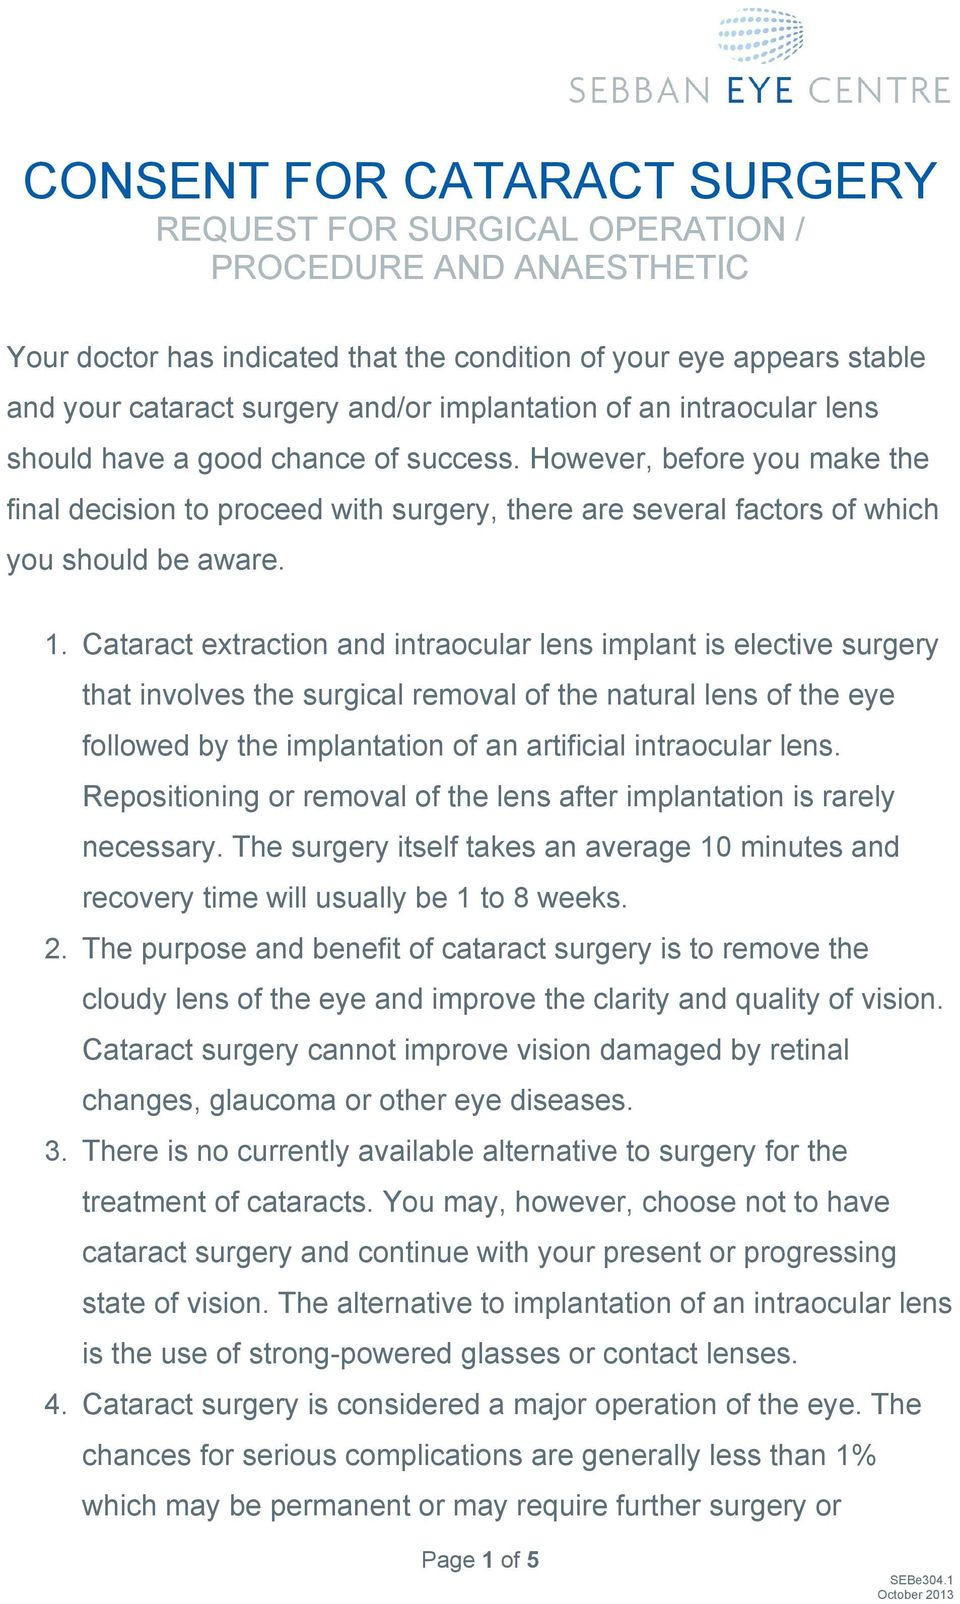 1. Cataract extraction and intraocular lens implant is elective surgery that involves the surgical removal of the natural lens of the eye followed by the implantation of an artificial intraocular